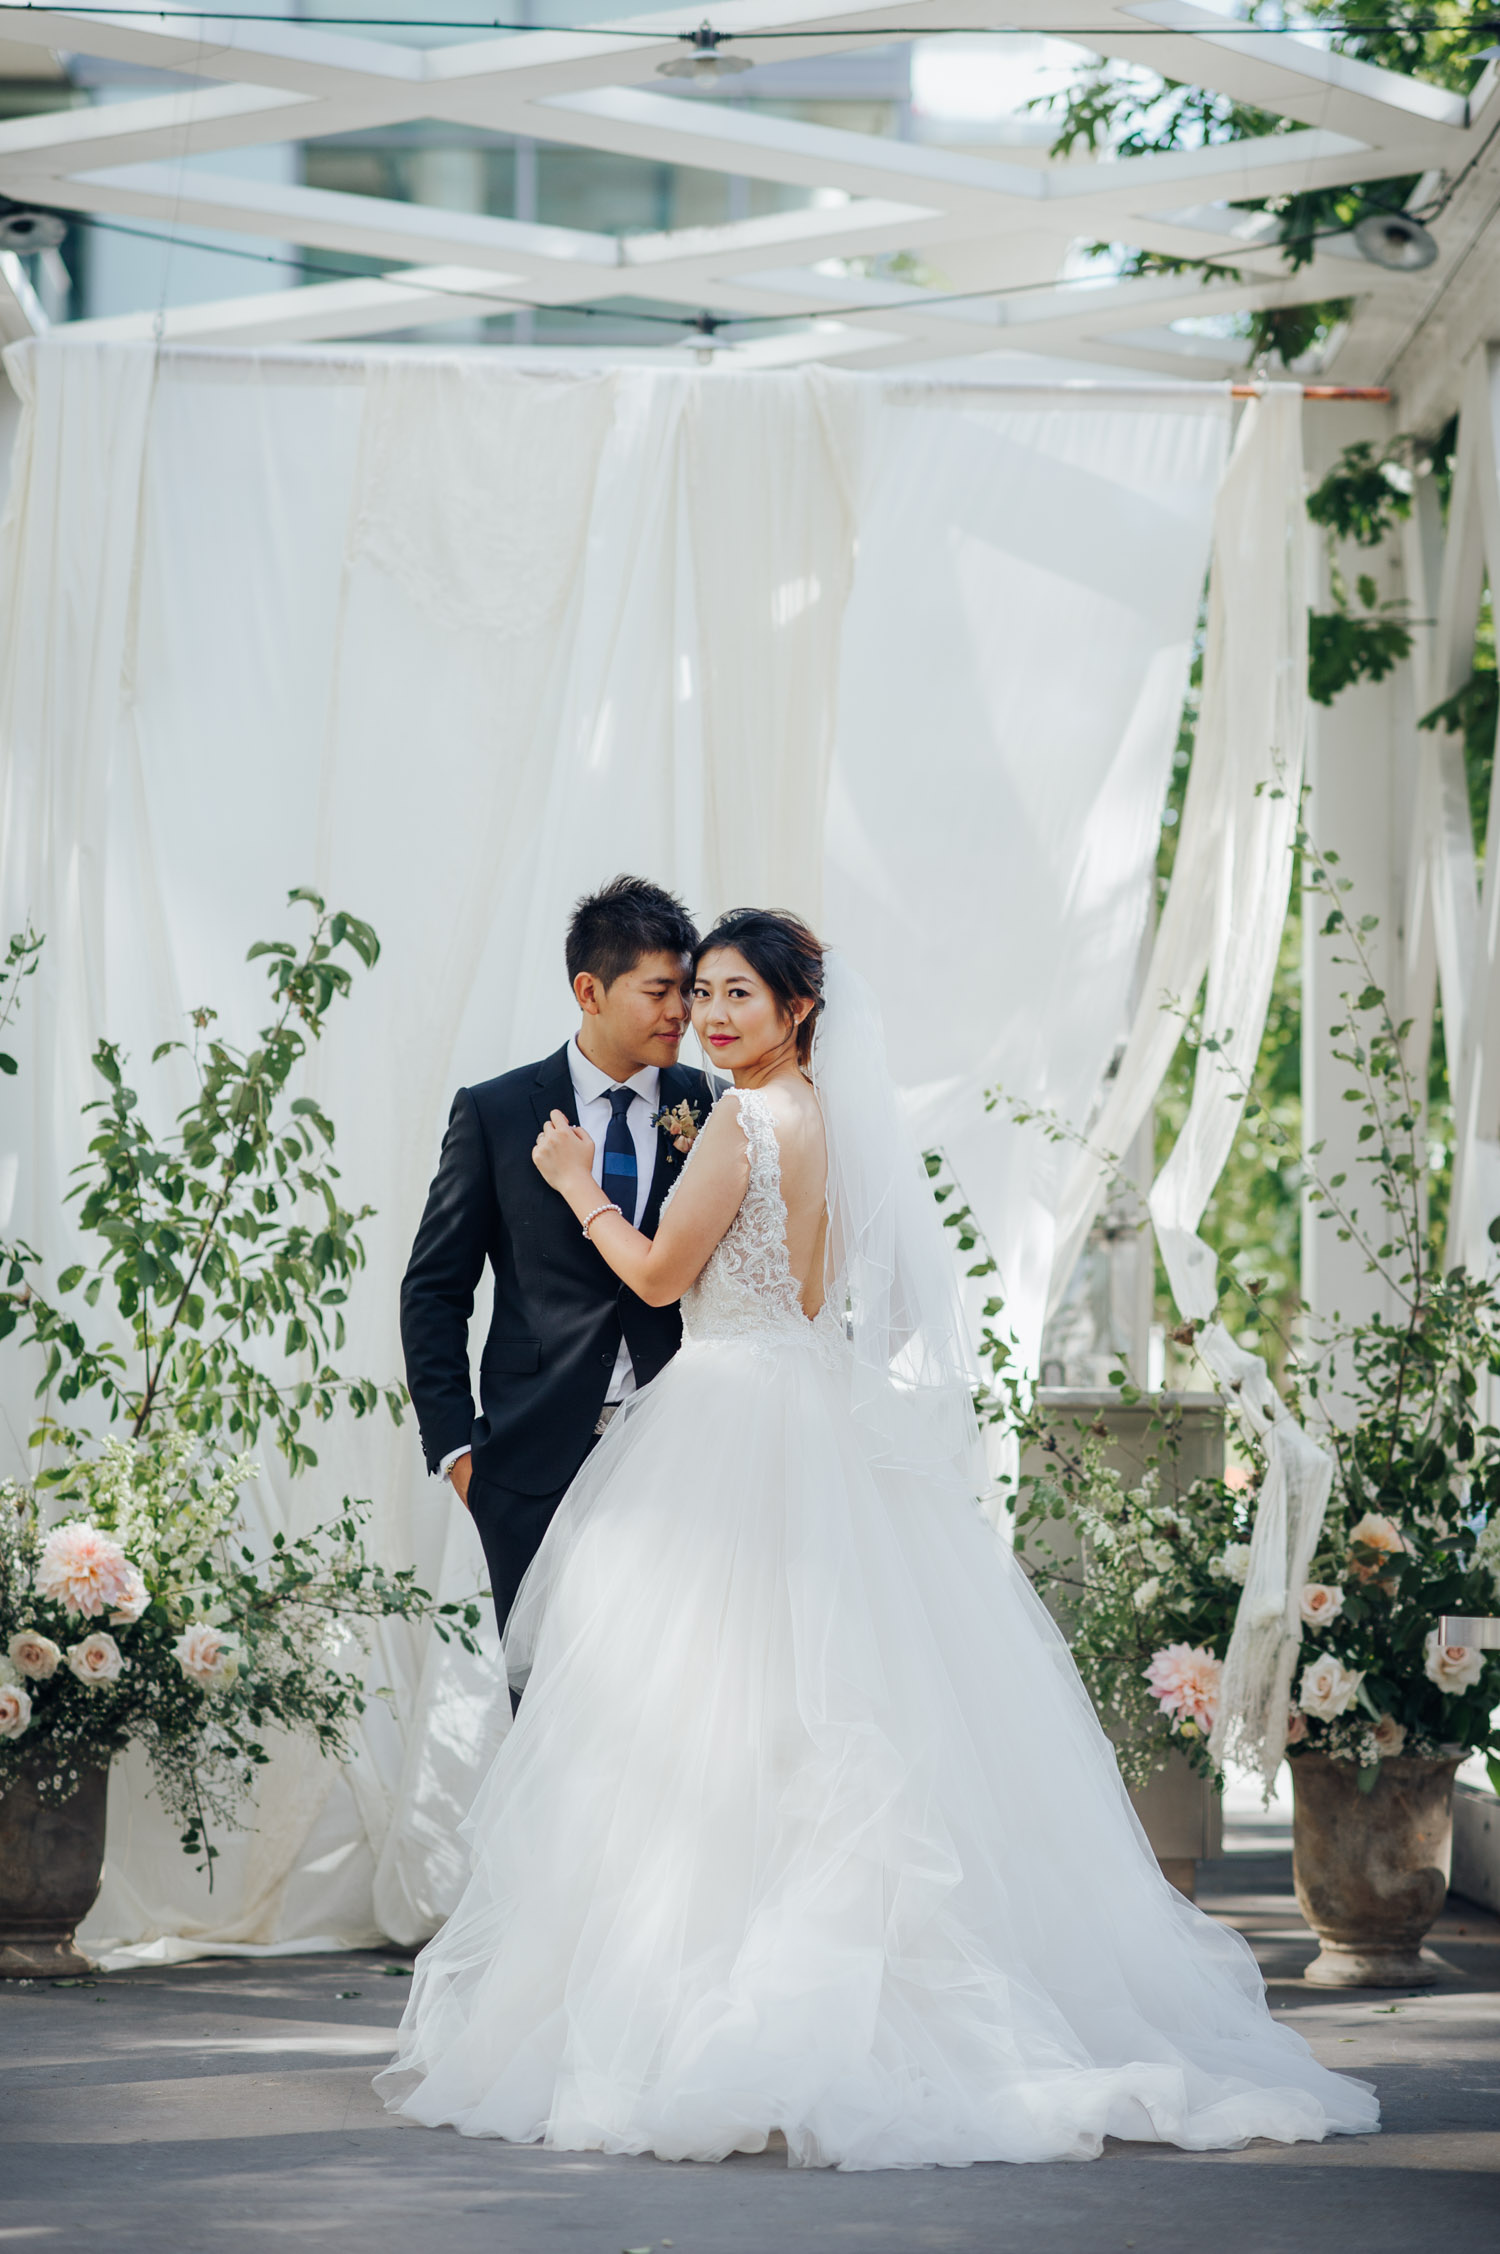 Toronto Colette grand cafe Wedding Outdoor Portrait